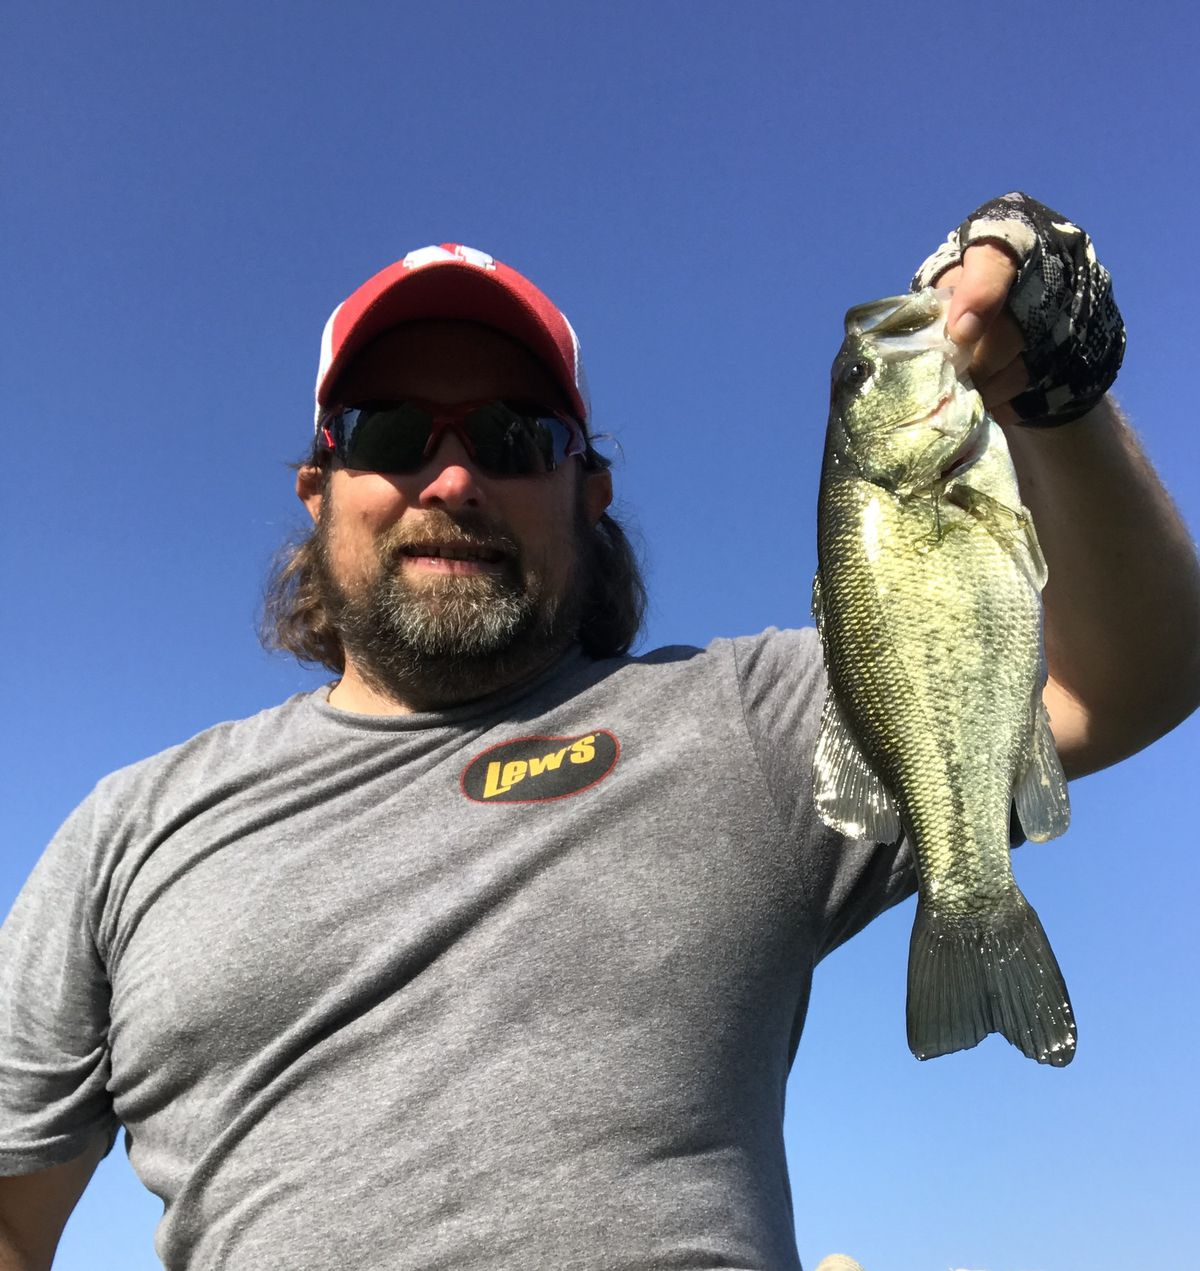 """Ken """"Husker"""" O'Malley and local largemouth bass. Provided photo"""